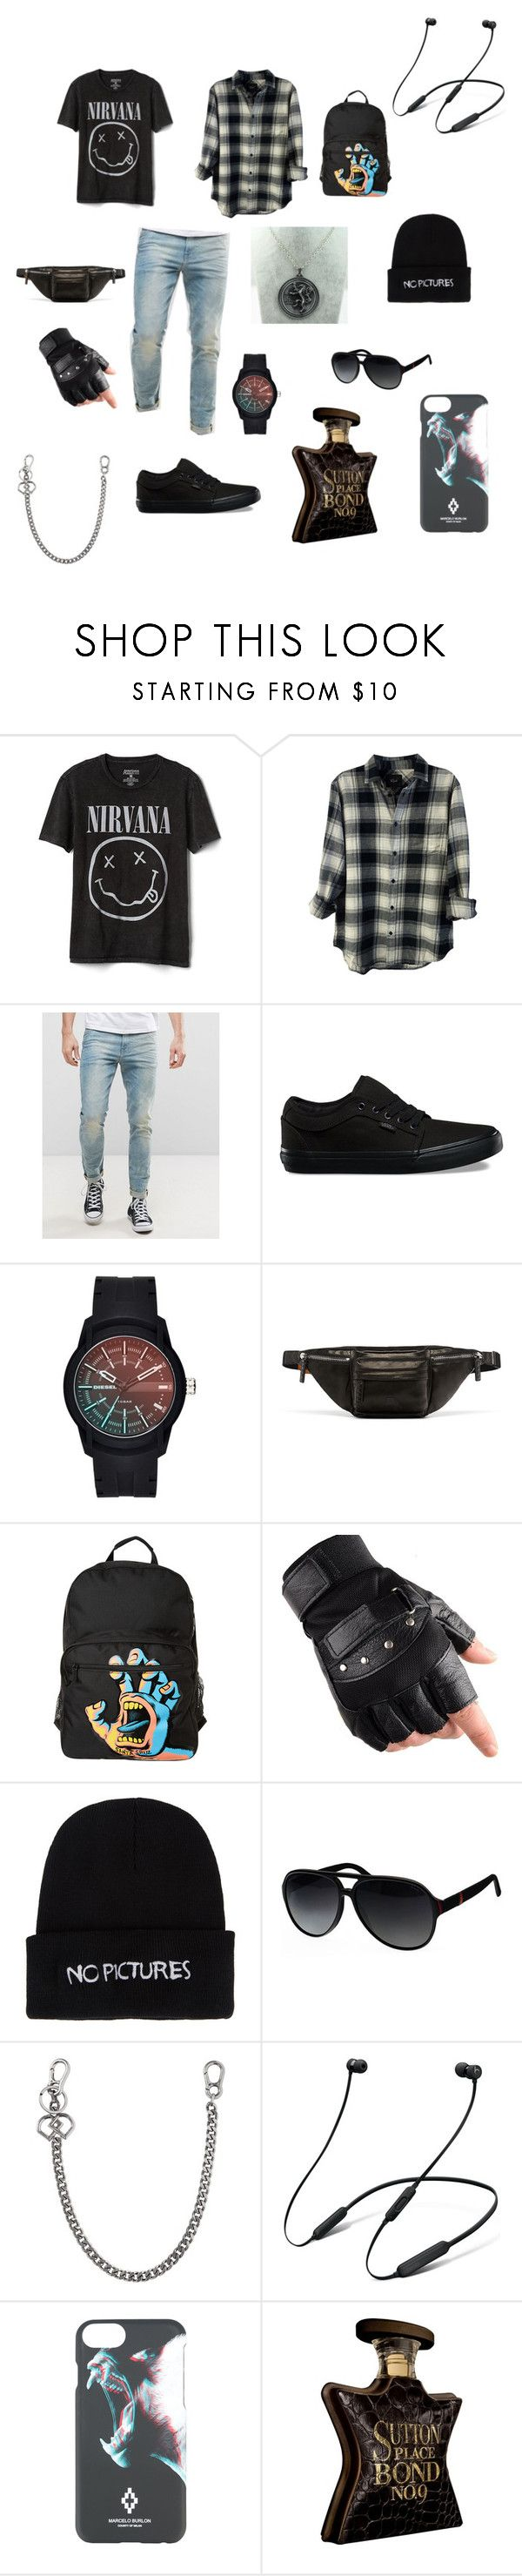 """Emo swag"" by lizjade ❤ liked on Polyvore featuring Gap, Rails, ASOS, Vans, Diesel, MCM, Santa Cruz Skateboards, Nasaseasons, Gucci and Dsquared2"